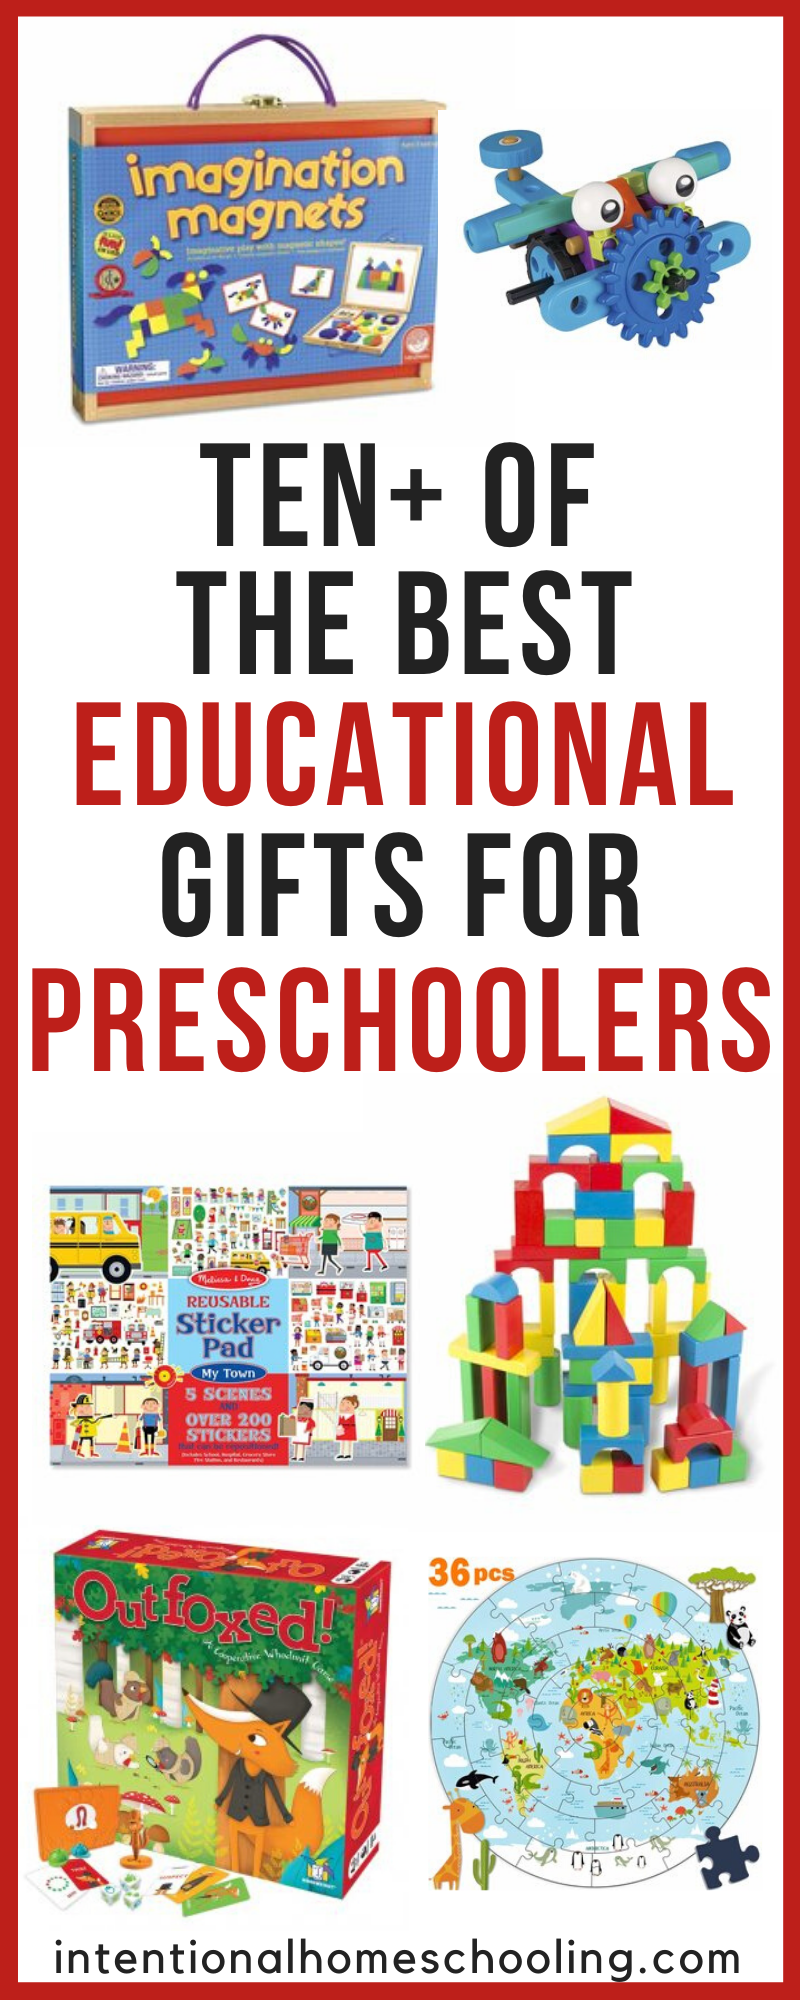 The Best Educational Gifts and Toys for Preschool and Pre-Kindergarten kids